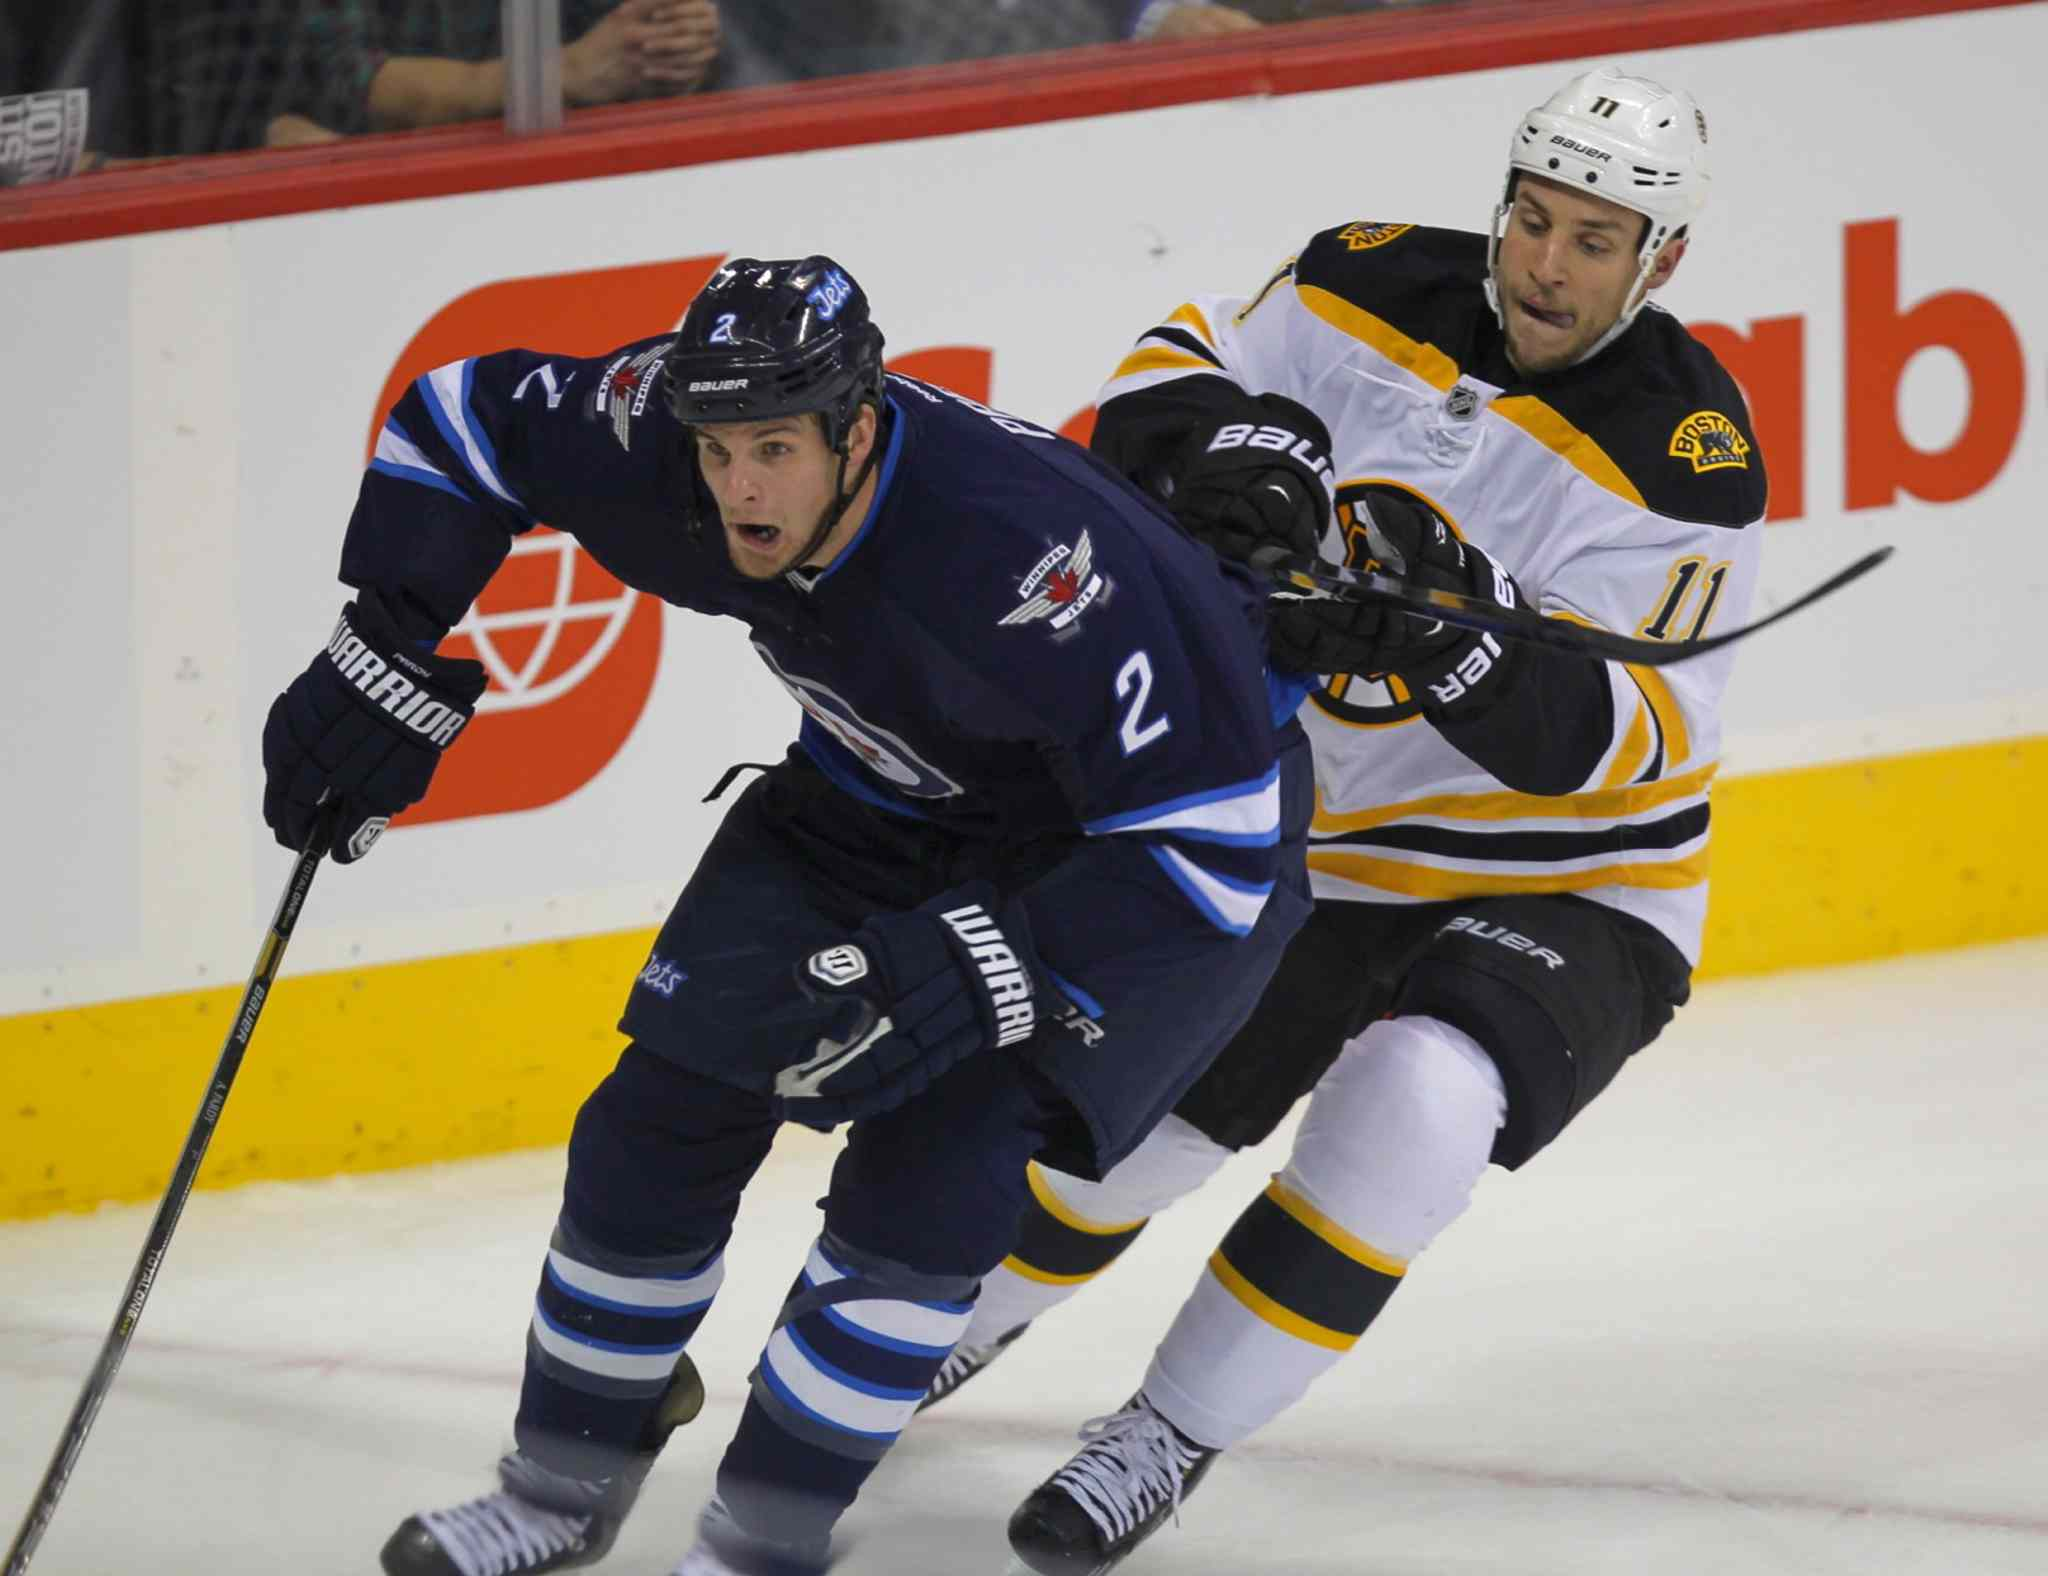 Paul Postma is chased by Gregory Campbell of the Boston Bruins in the first period.